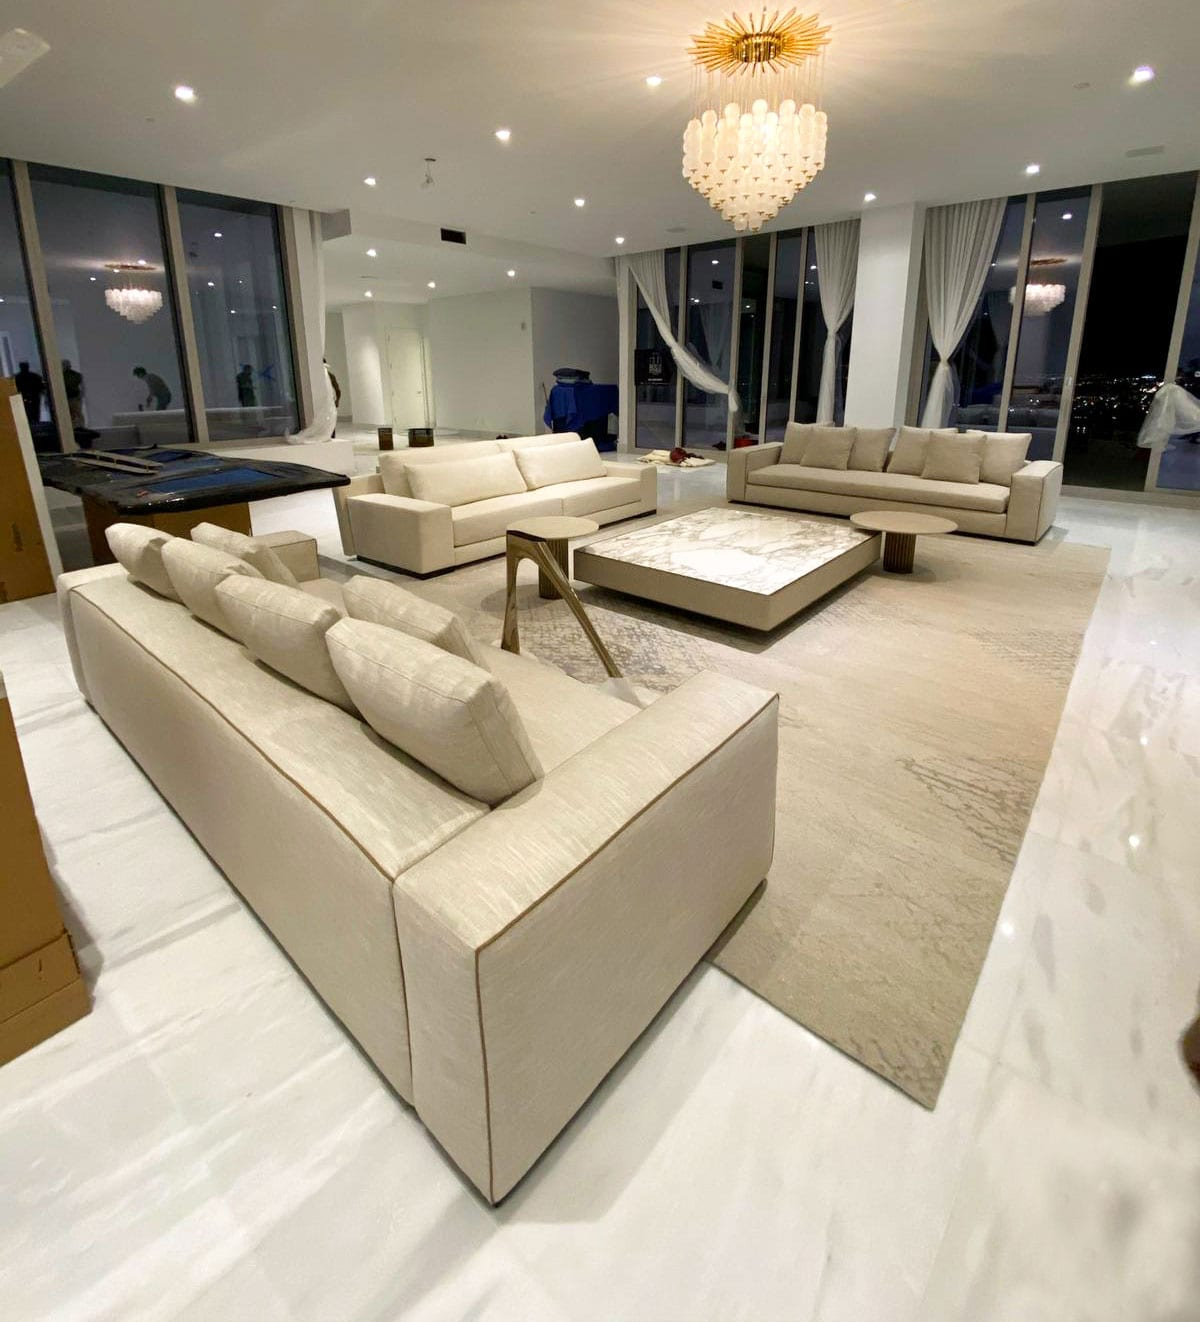 Stoneline-Group-Tile-Collection-Marble-Tiles-Dione-White-livingroom-floor-performance-picture